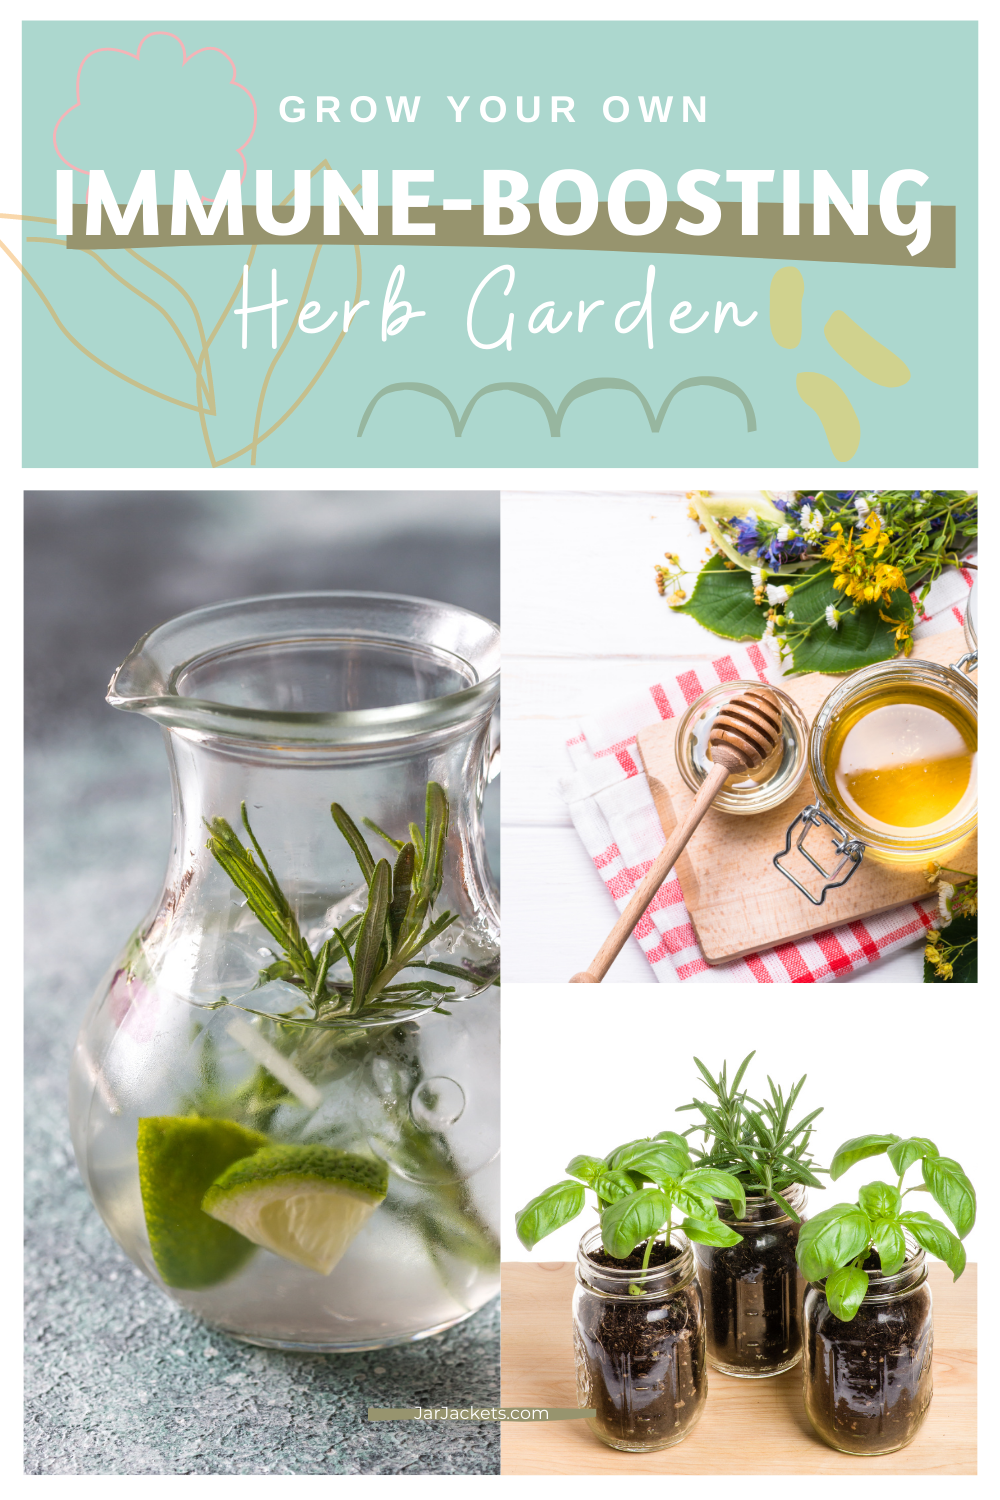 Grow Your Own Immune-Boosting Herb Garden